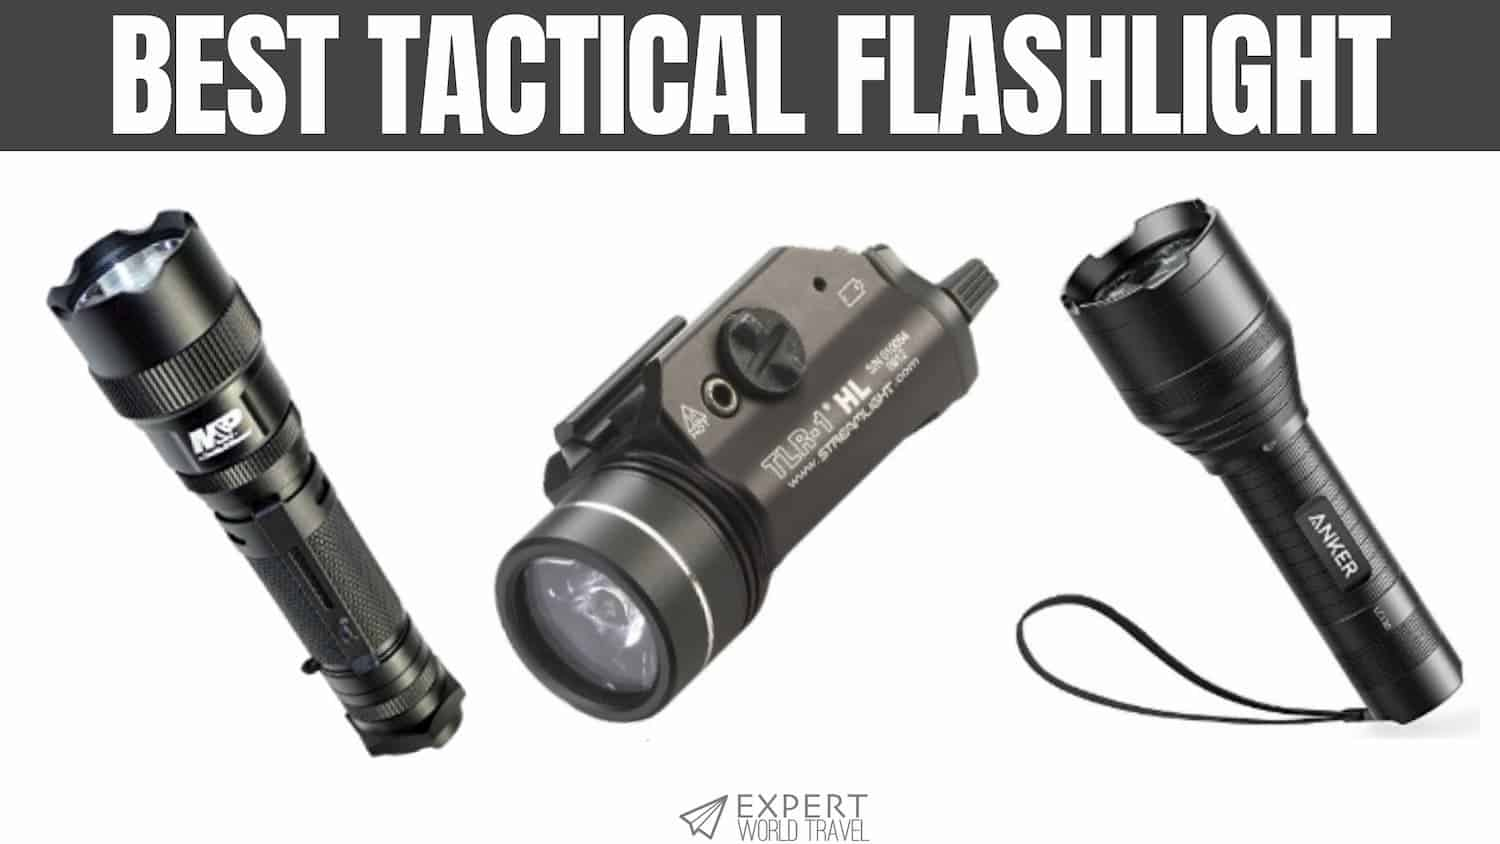 Rechargeable 26650 Batt Anker Ultra-Bright Tactical Flashlight with 1300 Lumens